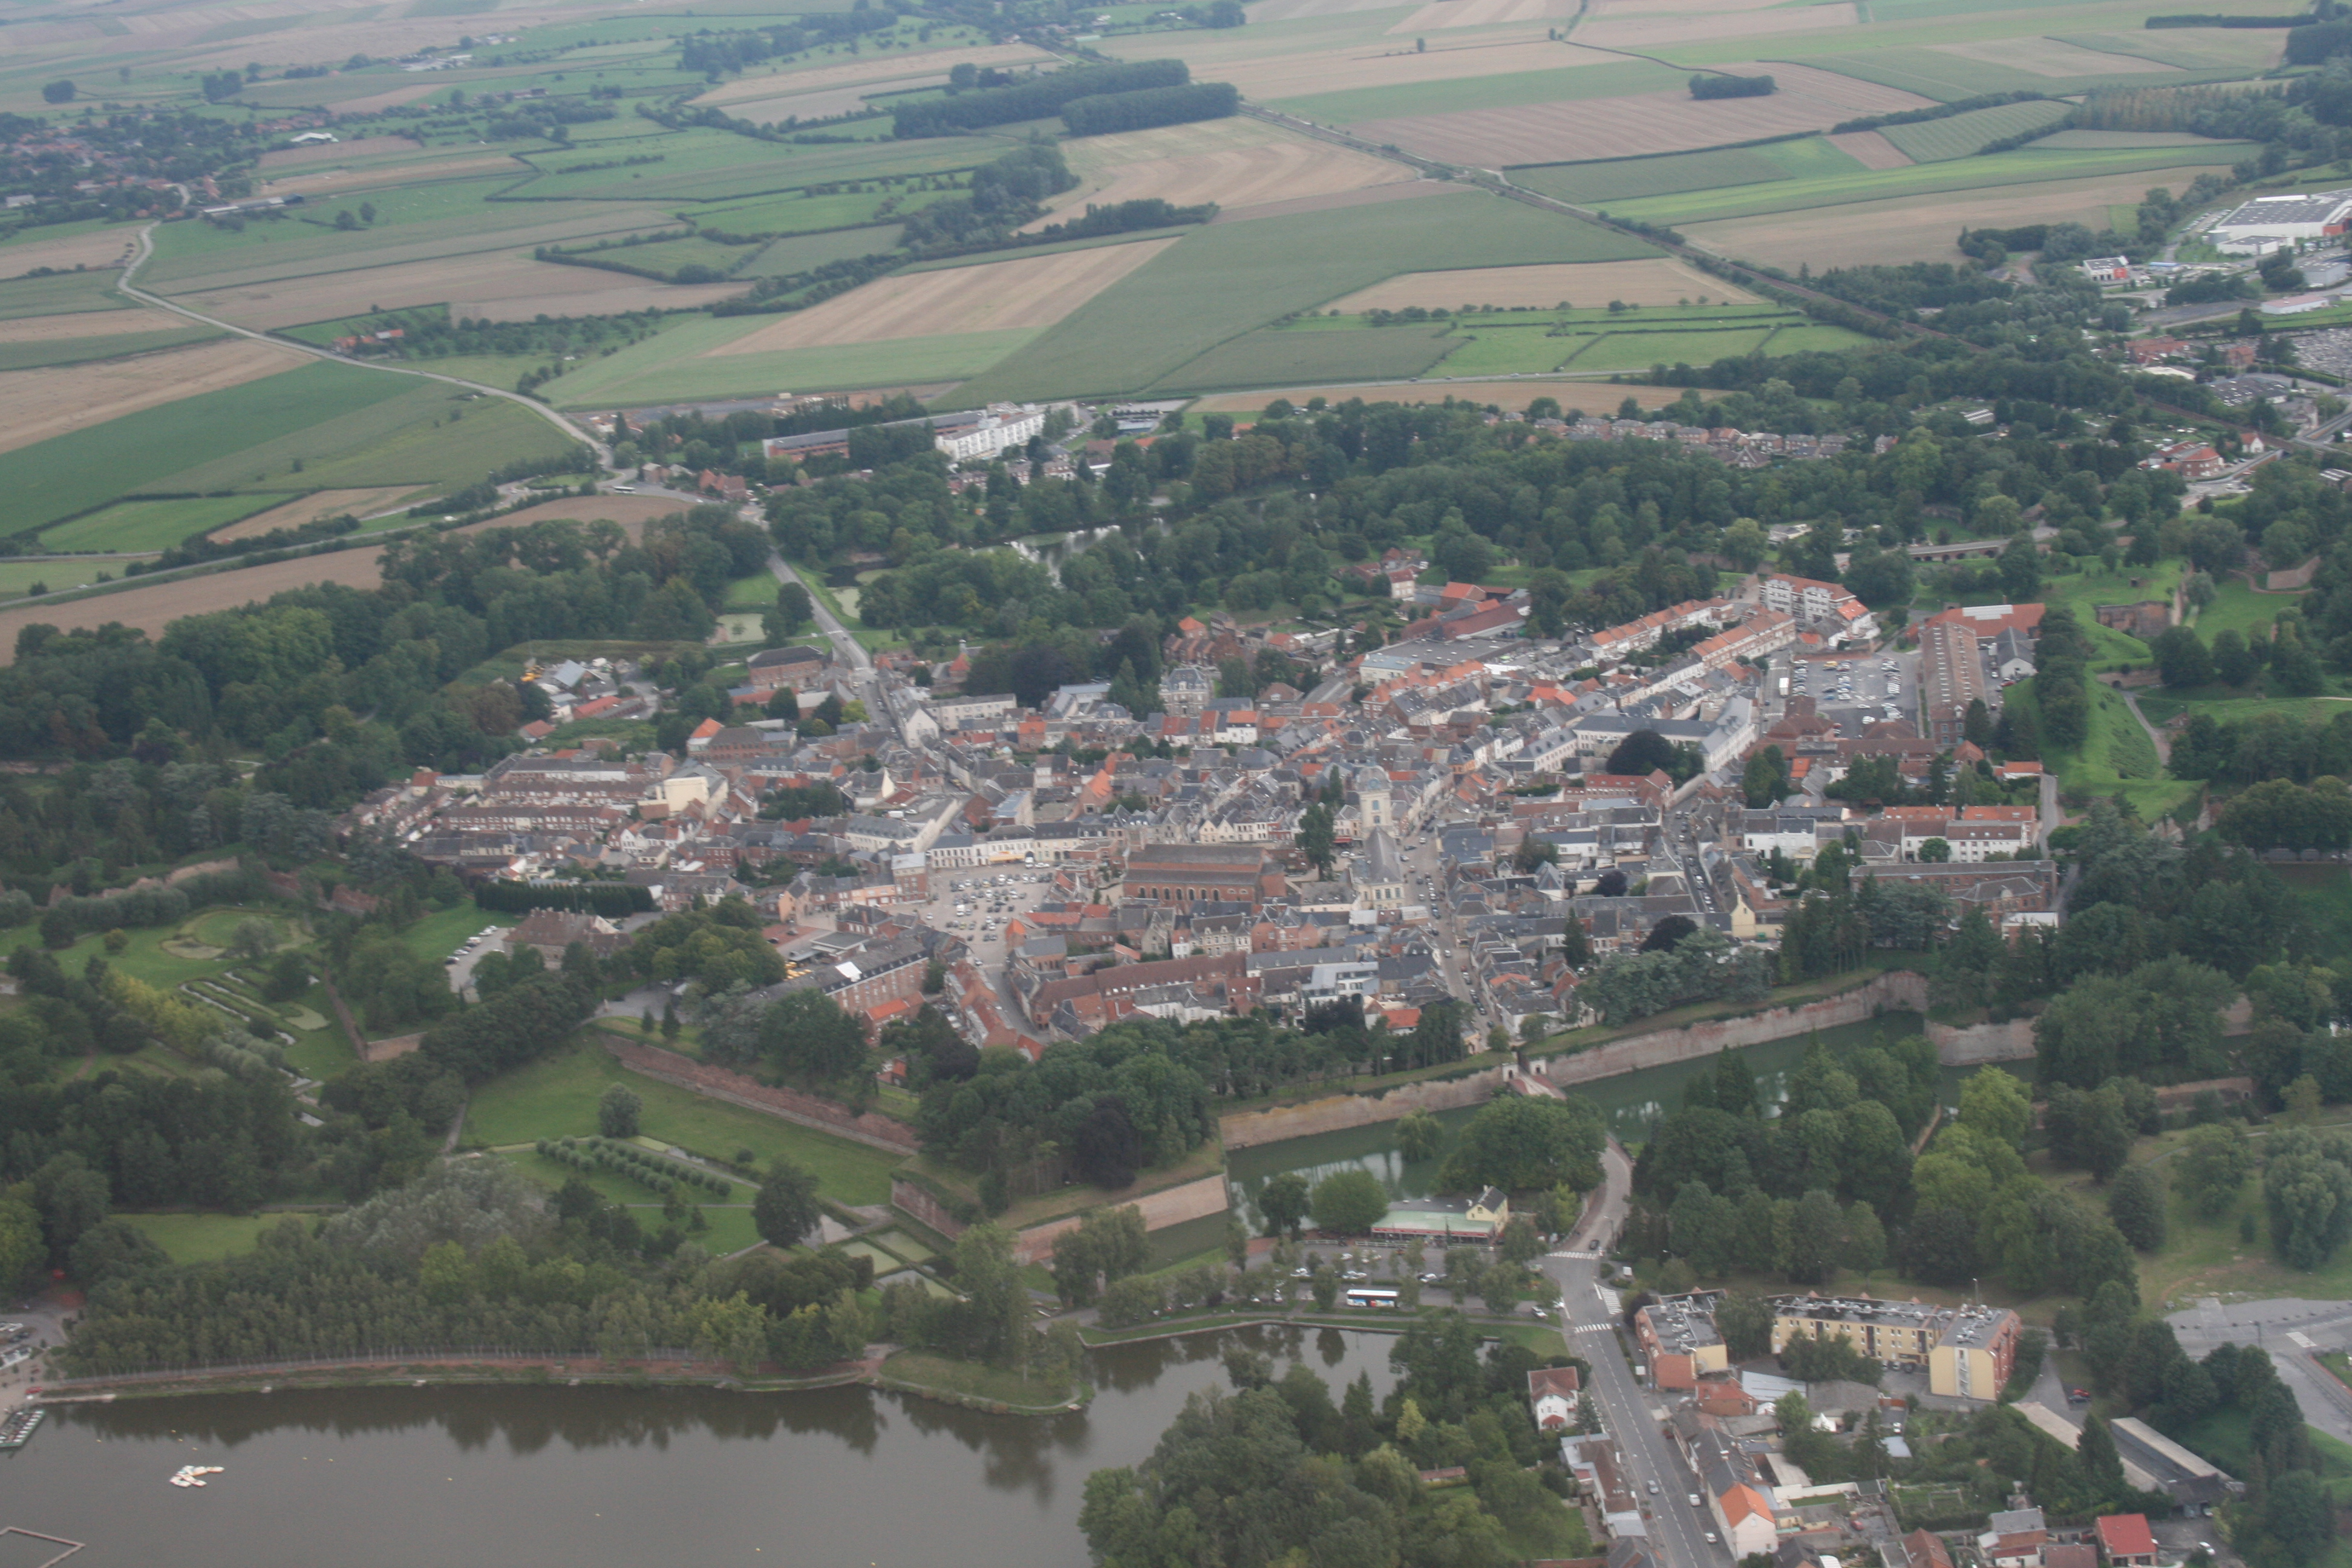 Aerial view of Le Quesnoy, France, taken on August 28, 2010.